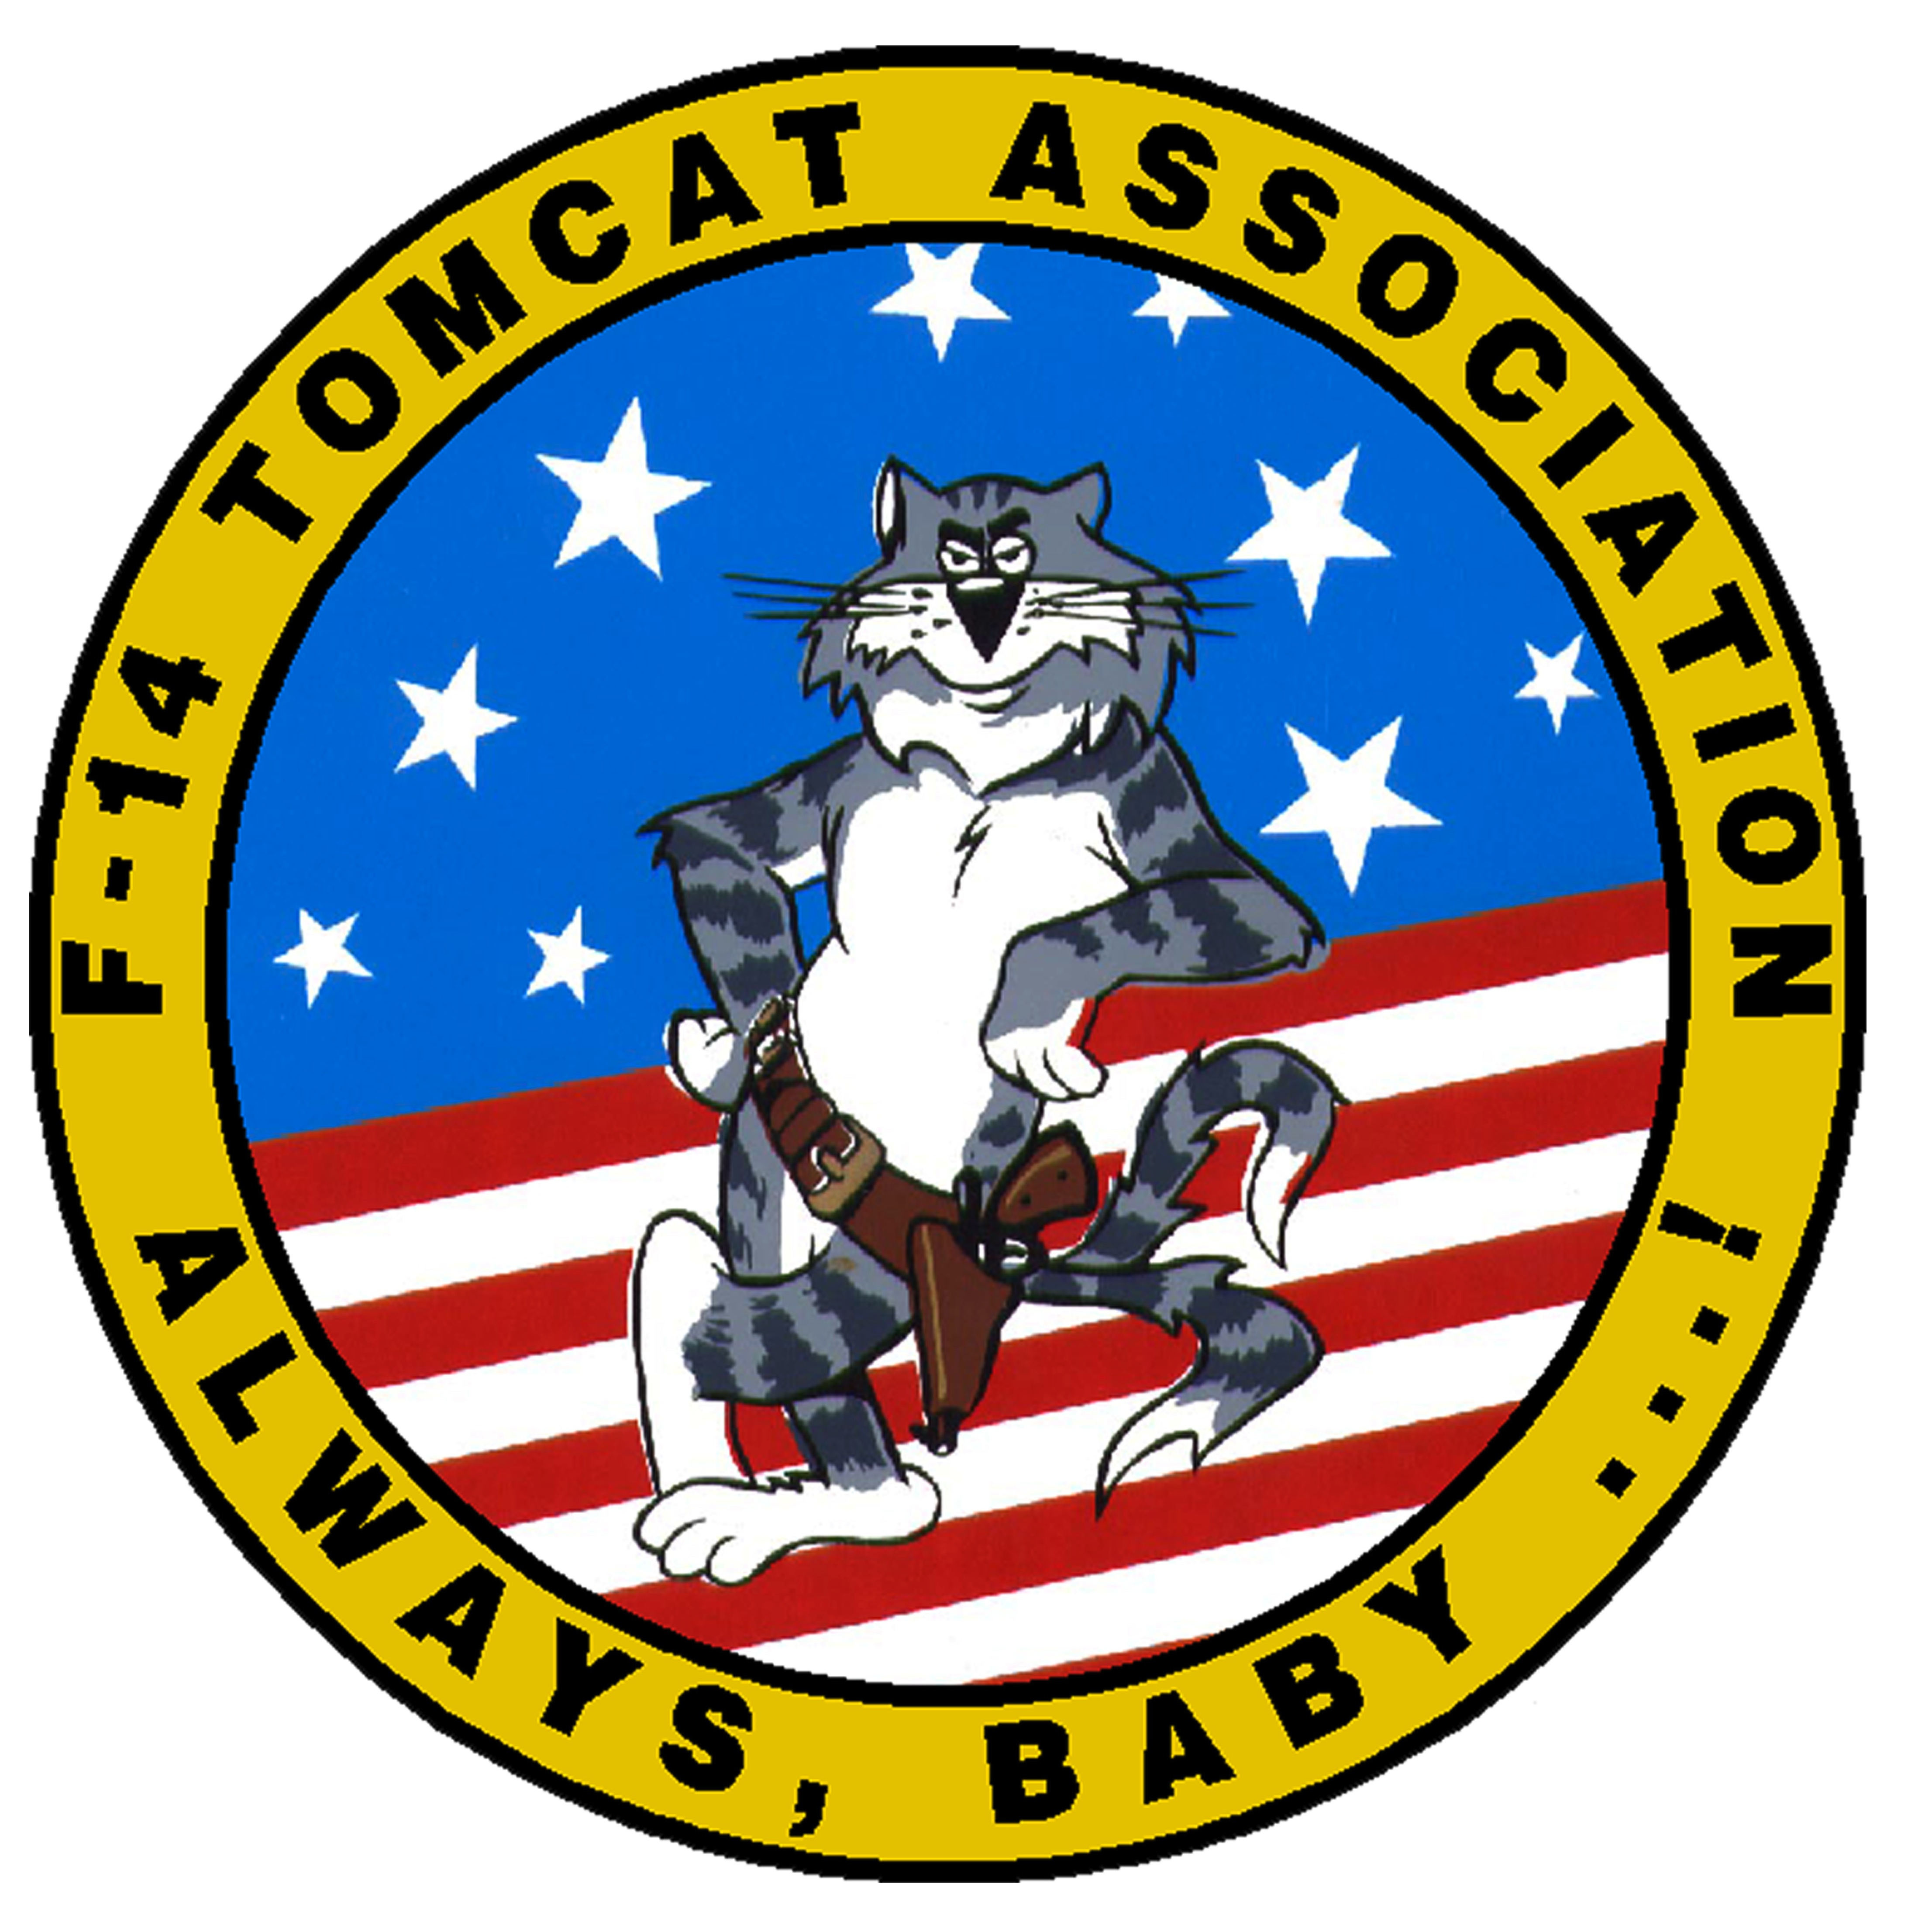 Click to View TOMCAT ASSOCIATION Country Store!